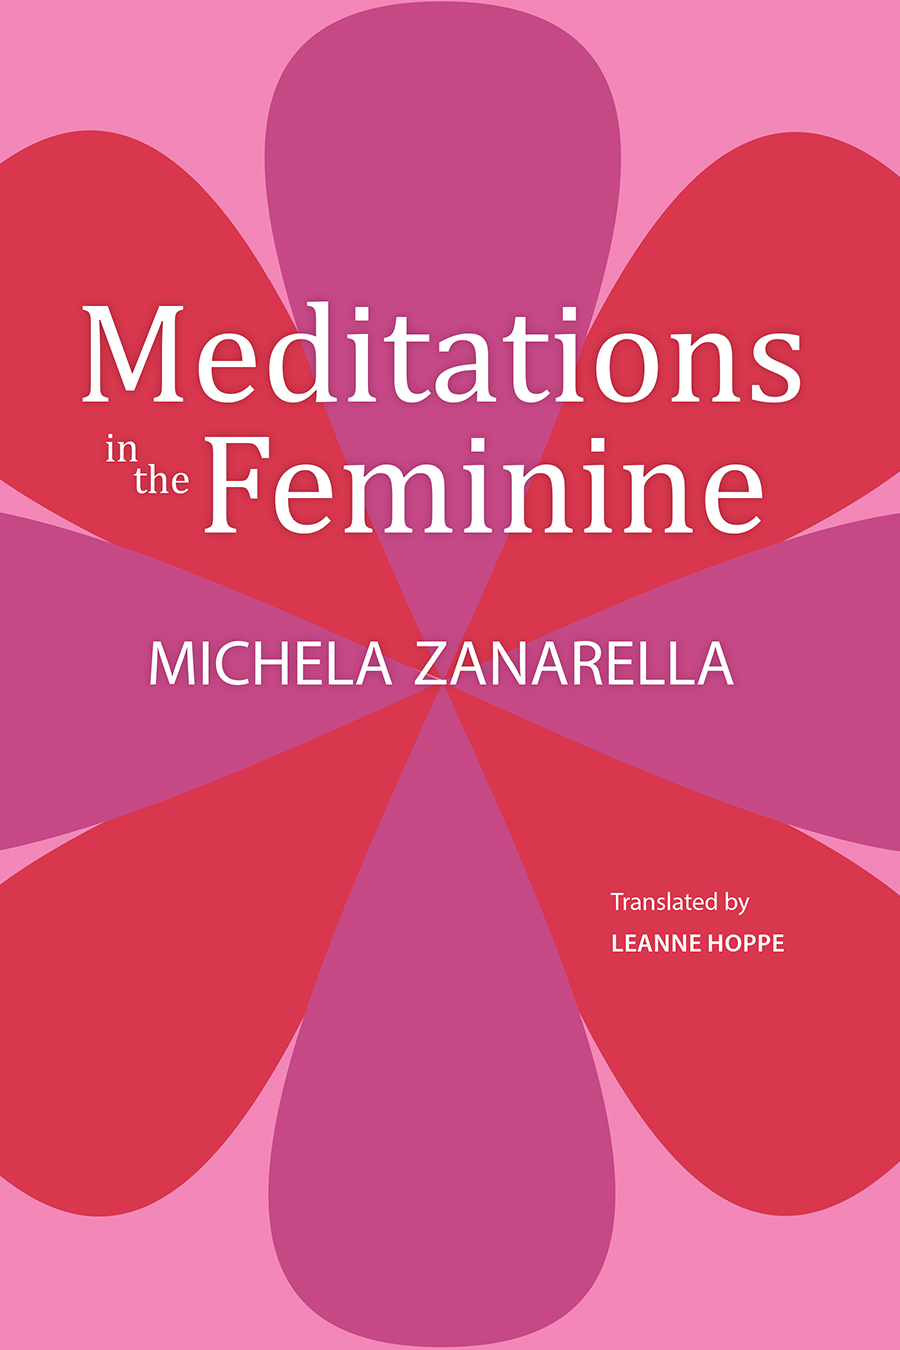 Meditations in the Feminine